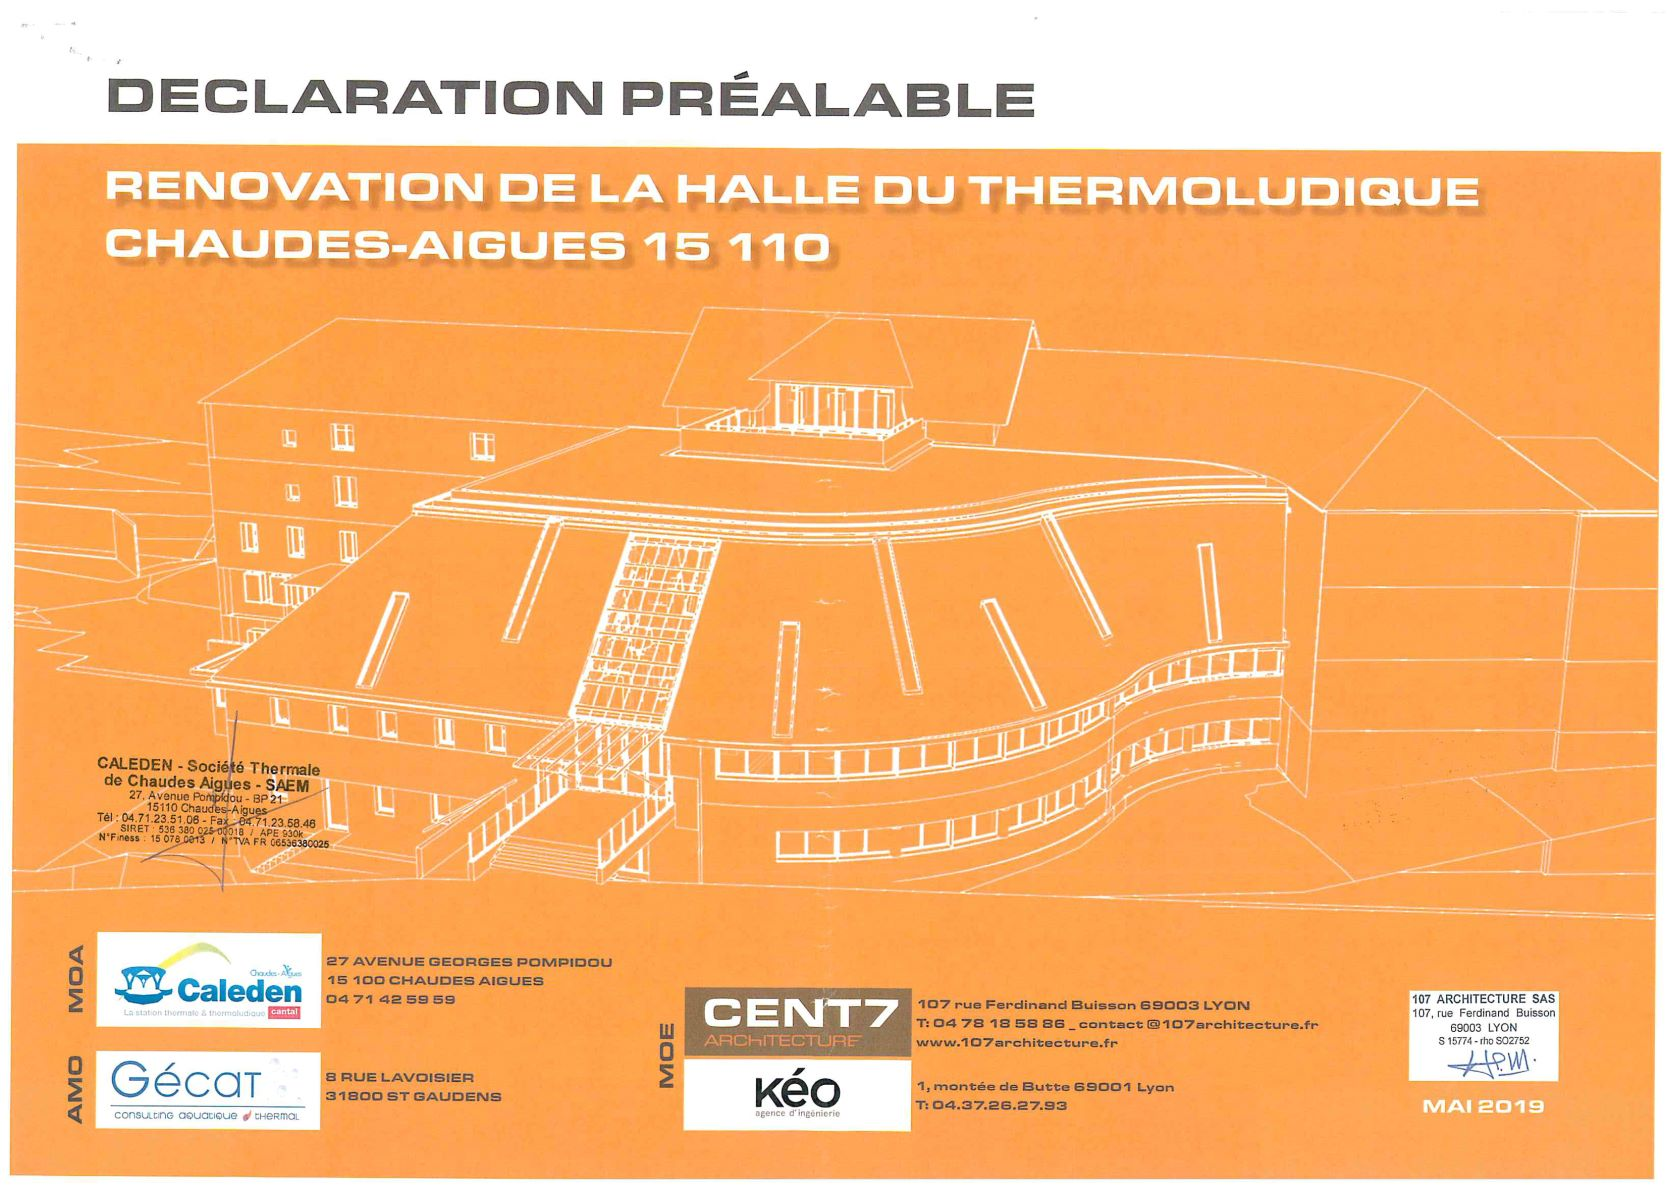 chaudes-aigues-village-developpement-caleden-thermoludisme-plan